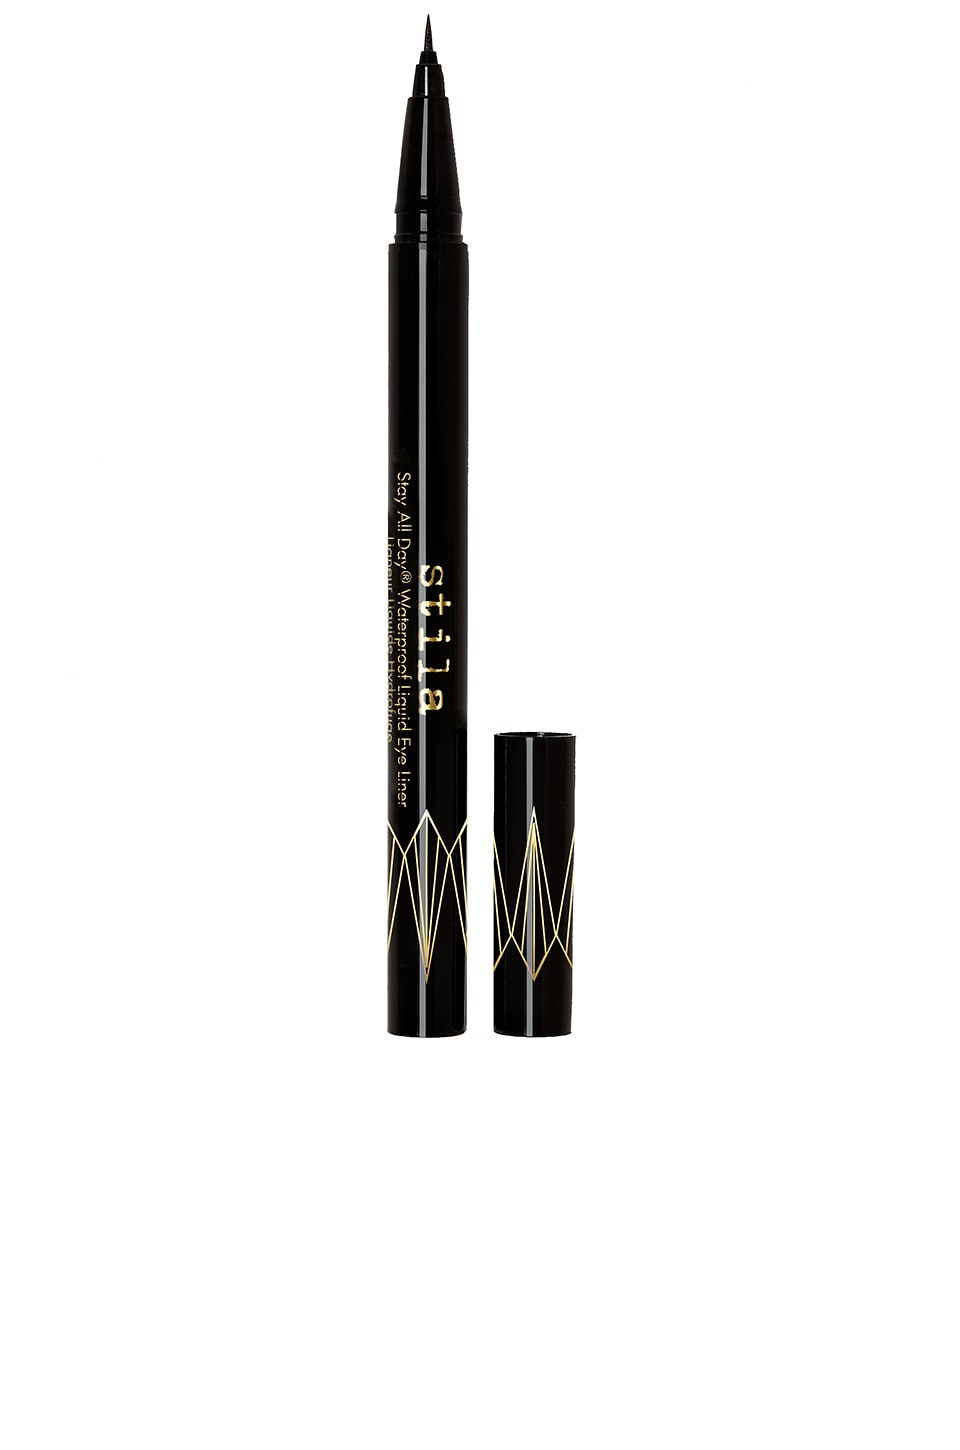 Stila DELINEADOR LÍQUIDO STAY ALL DAY WATERPROOF LIQUID EYE LINER MICRO TIP